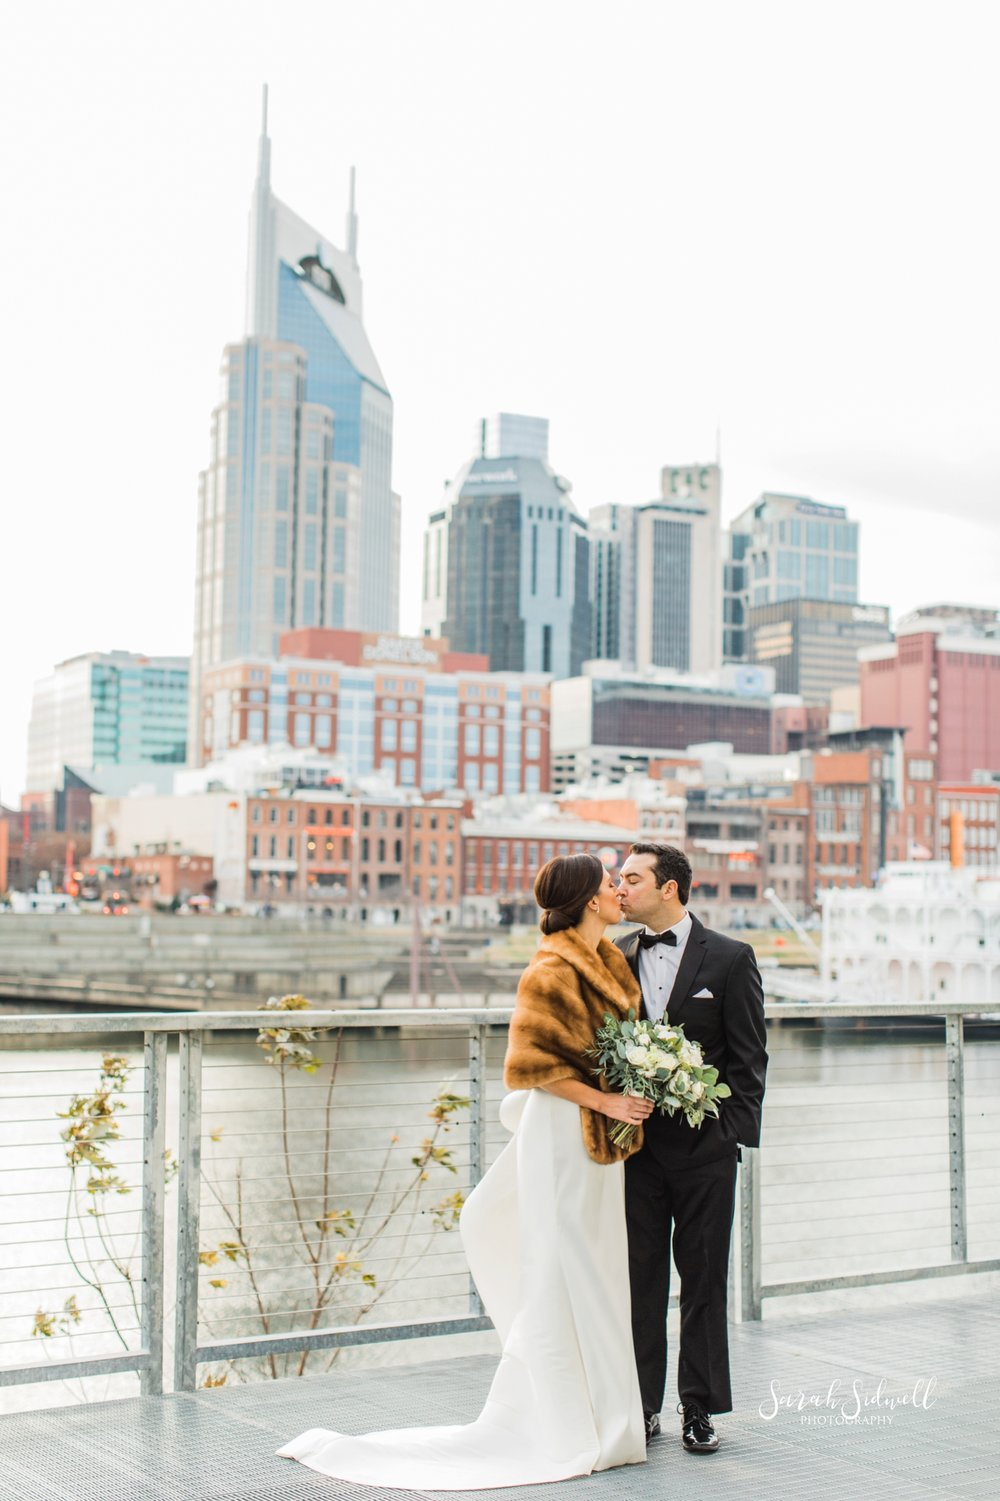 A bride and groom steal a few private moments together | Sarah Sidwell Photography | The Bell Tower